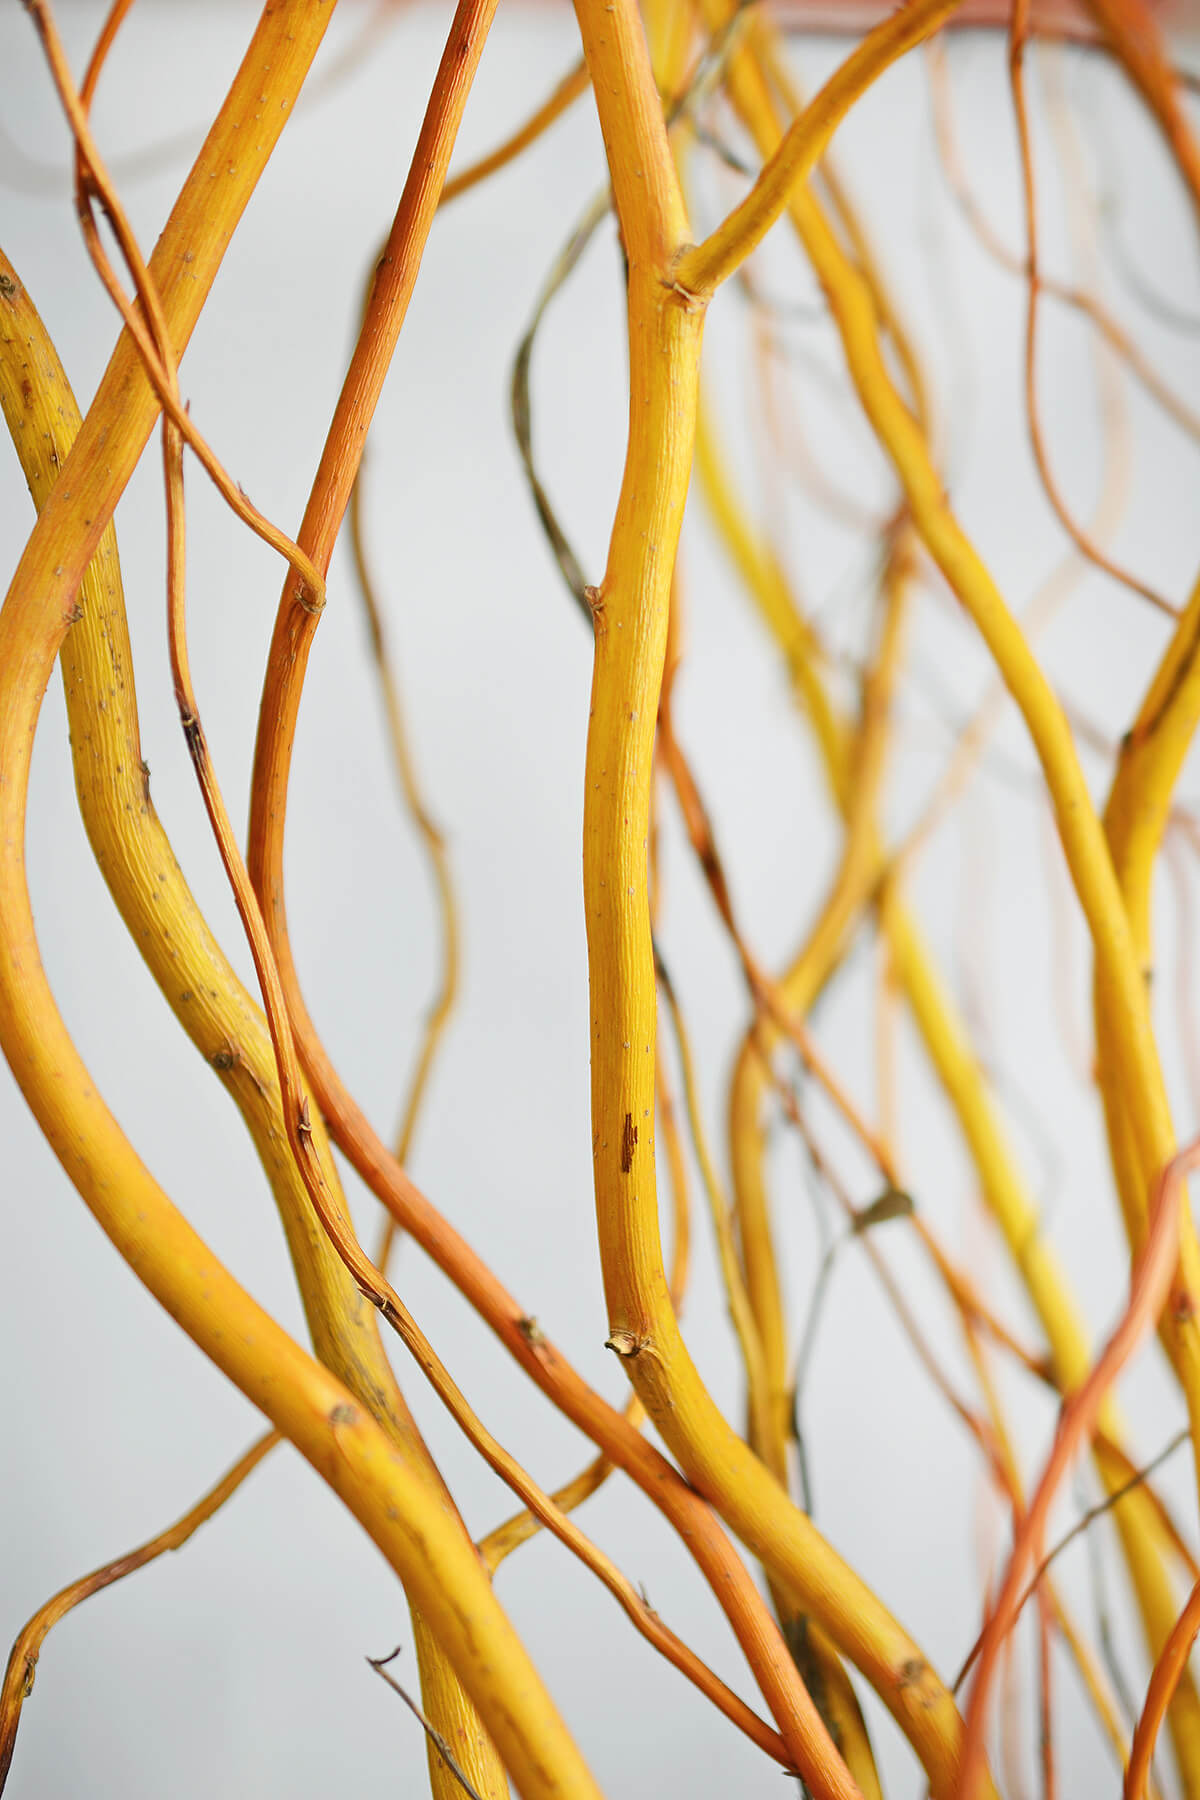 Orange & Yellow Curly Willow  Branches 4-5FT